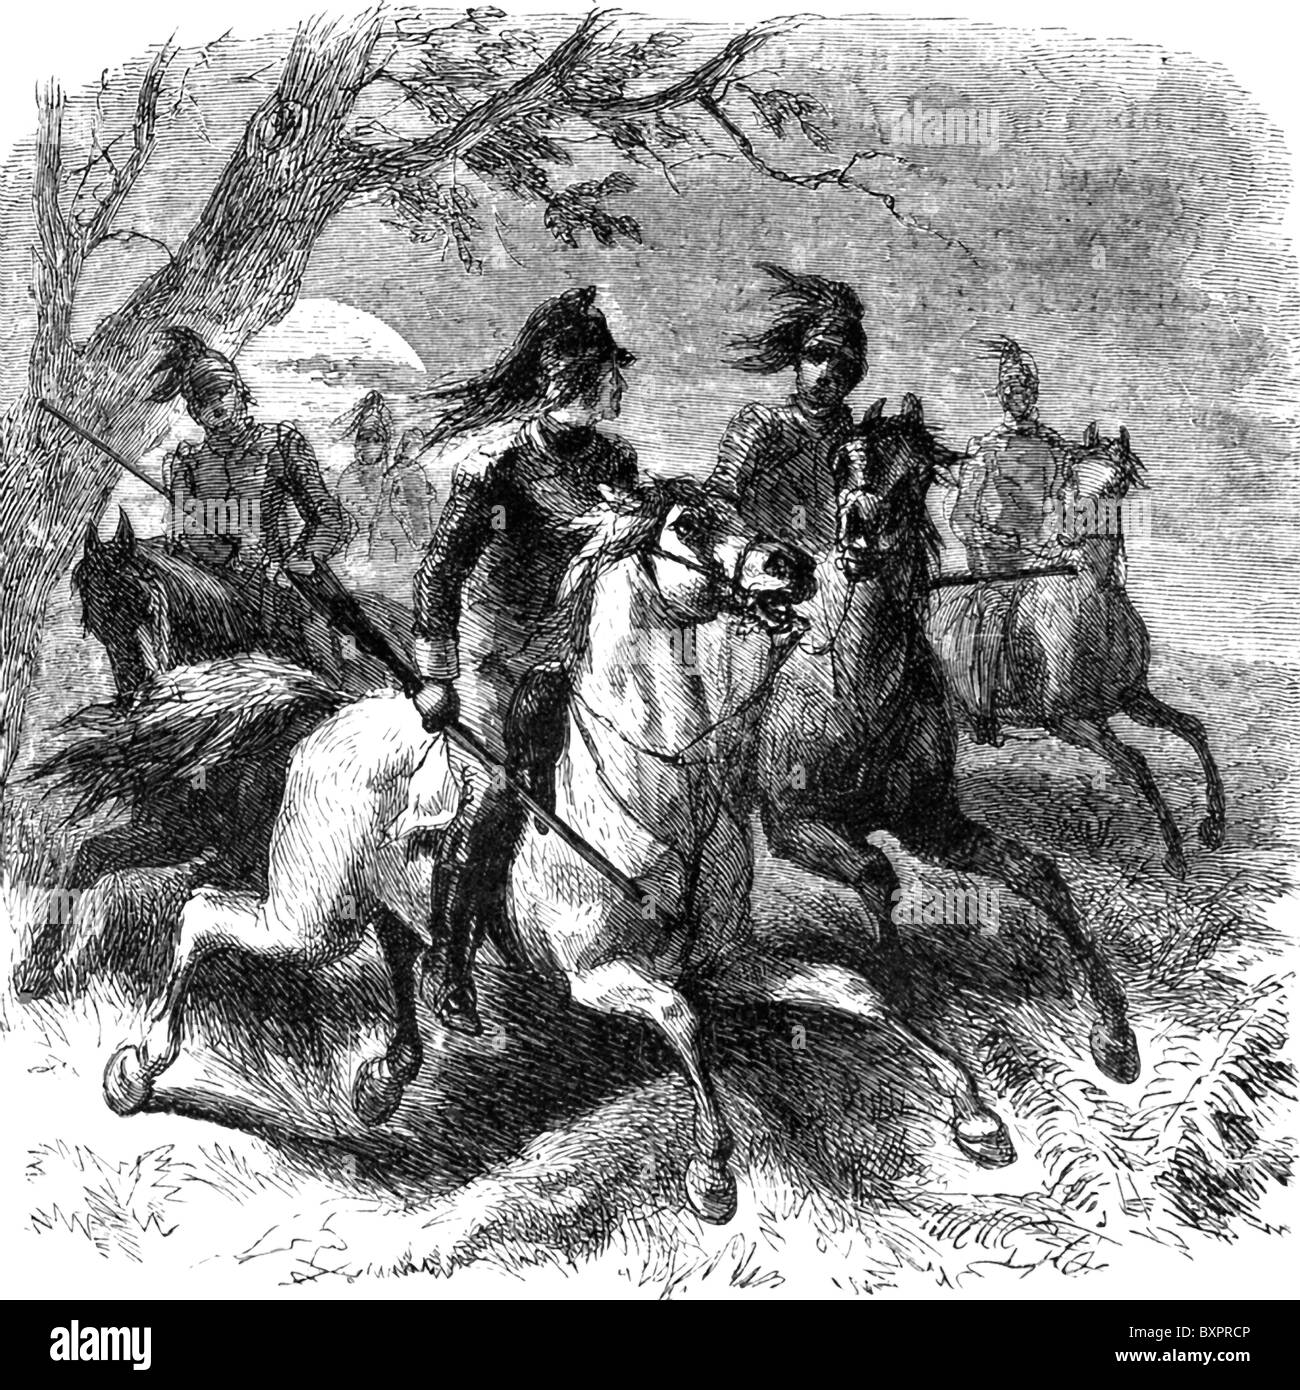 Francis Marion, an American partisan leader in the American Revolution, pursues the British with his cavalry. - Stock Image